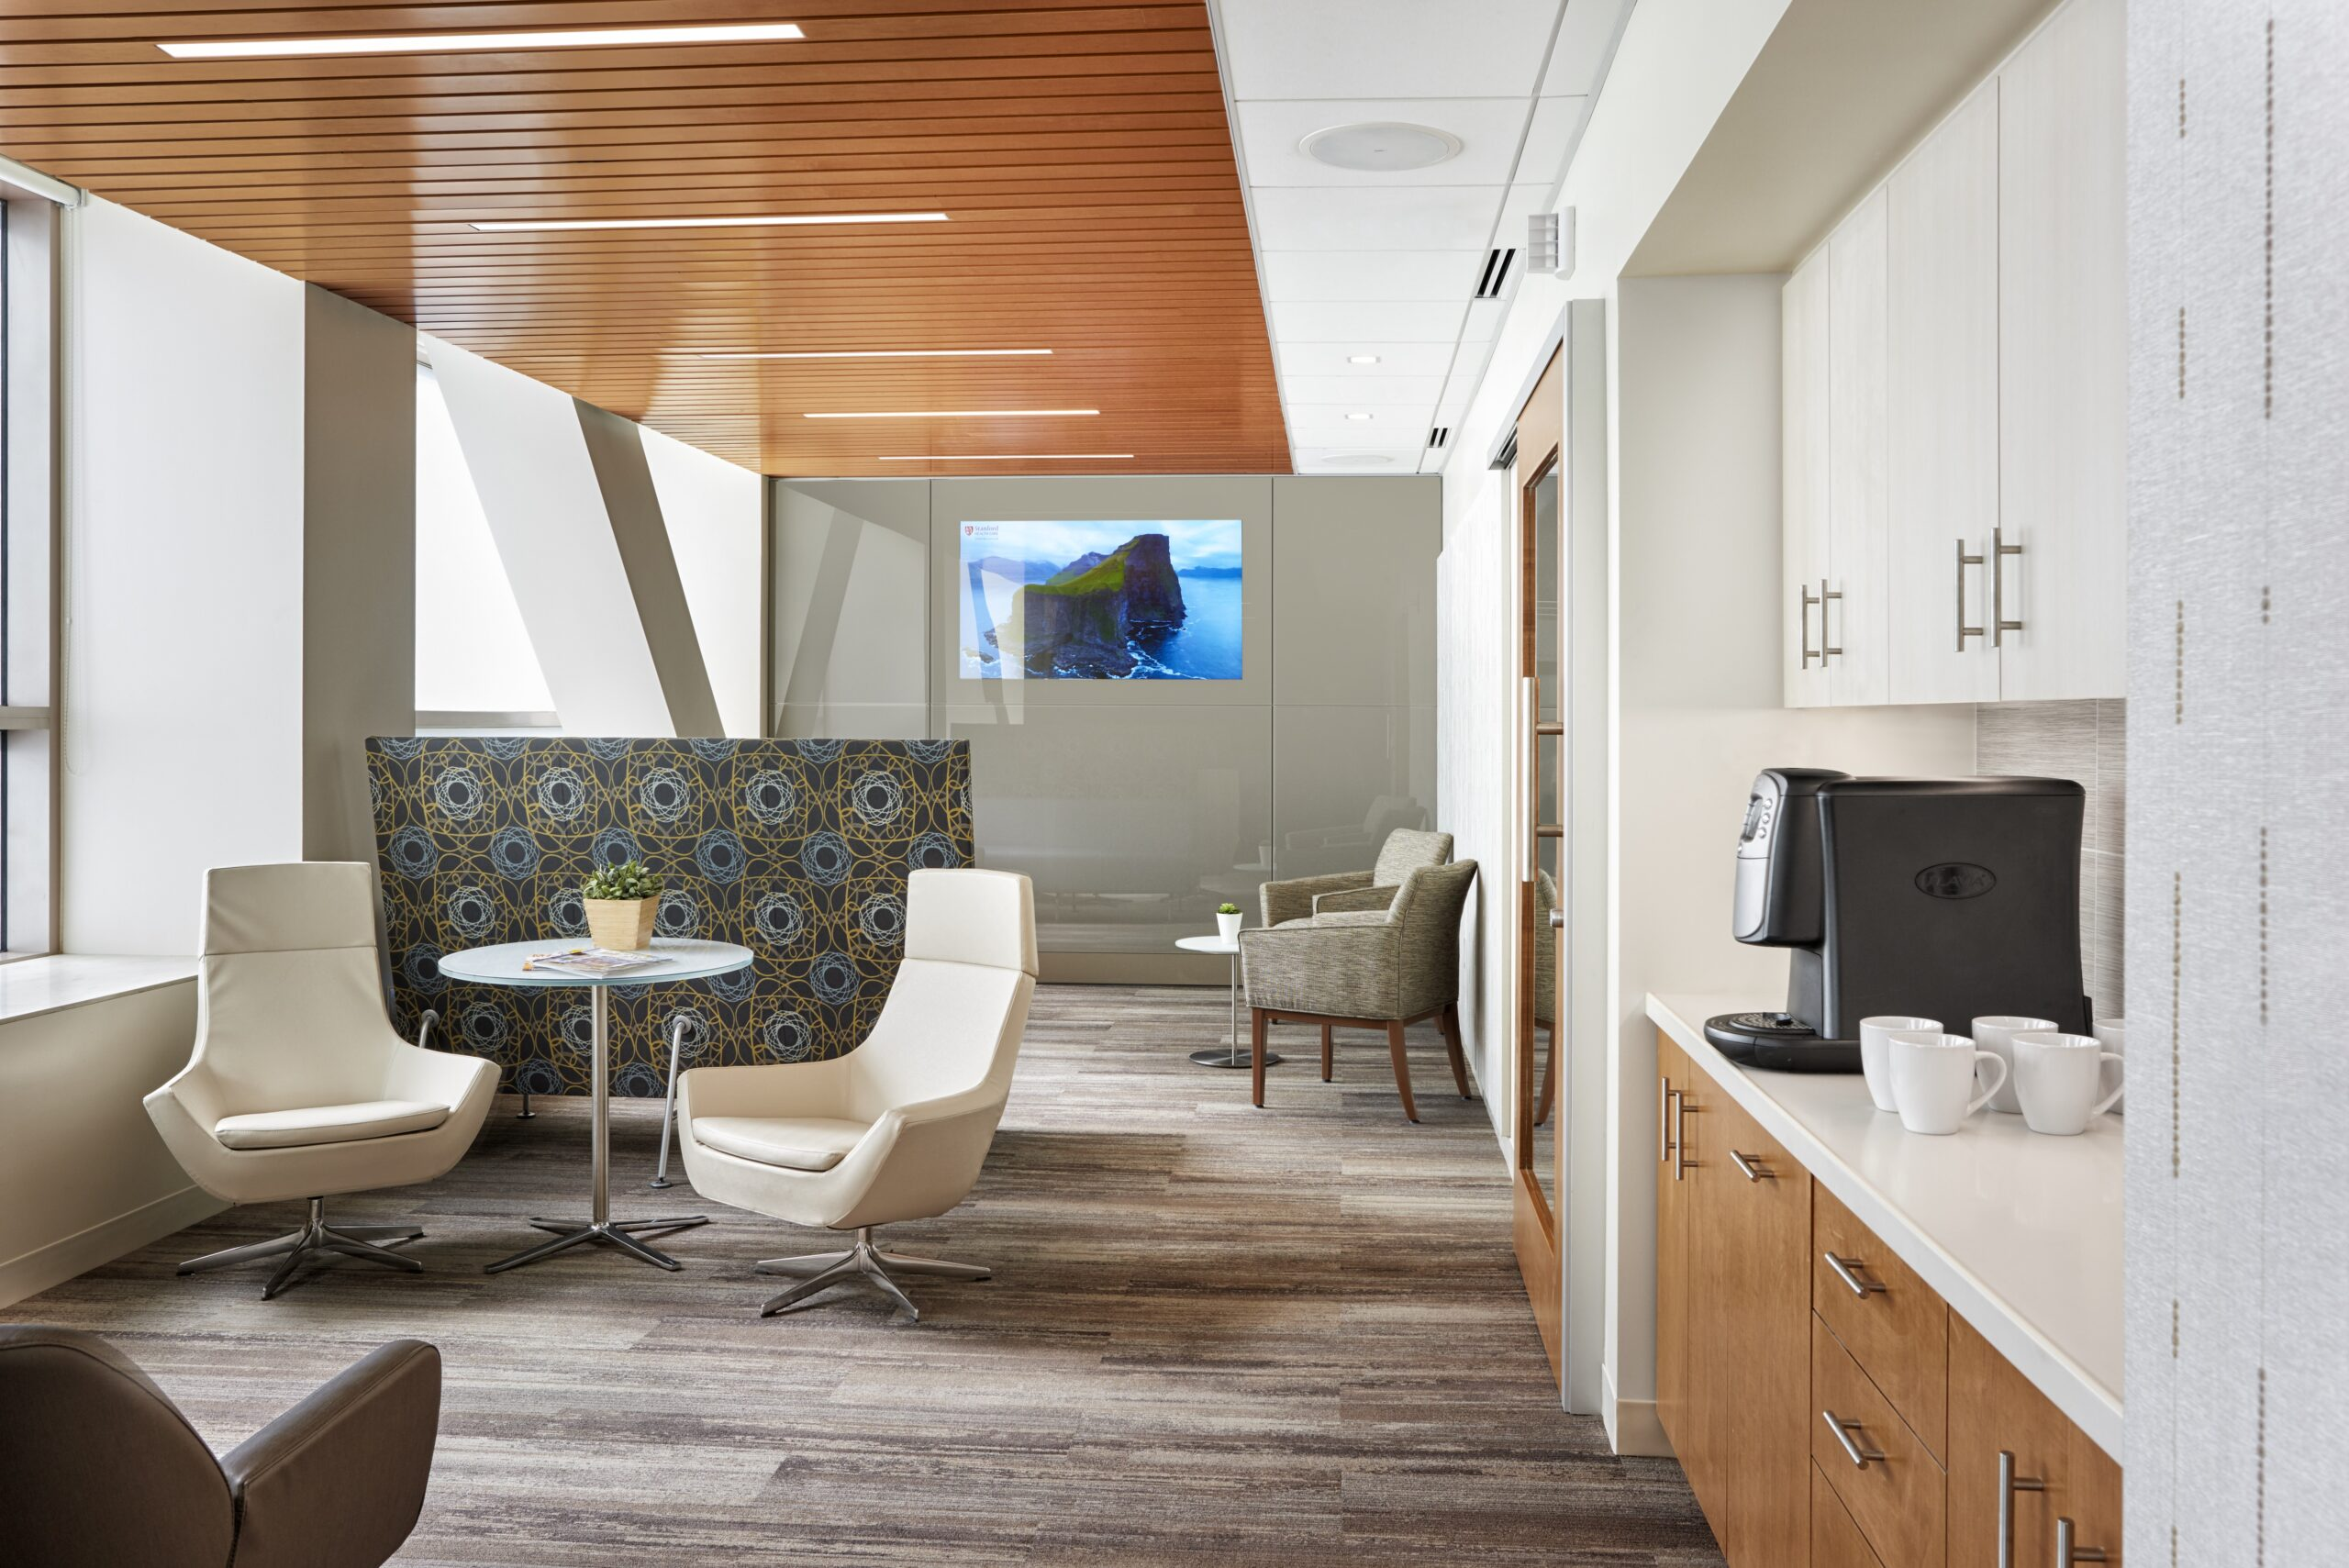 Stanford Health Care Comprehensive Cancer Center Breast Imaging Department Remodel